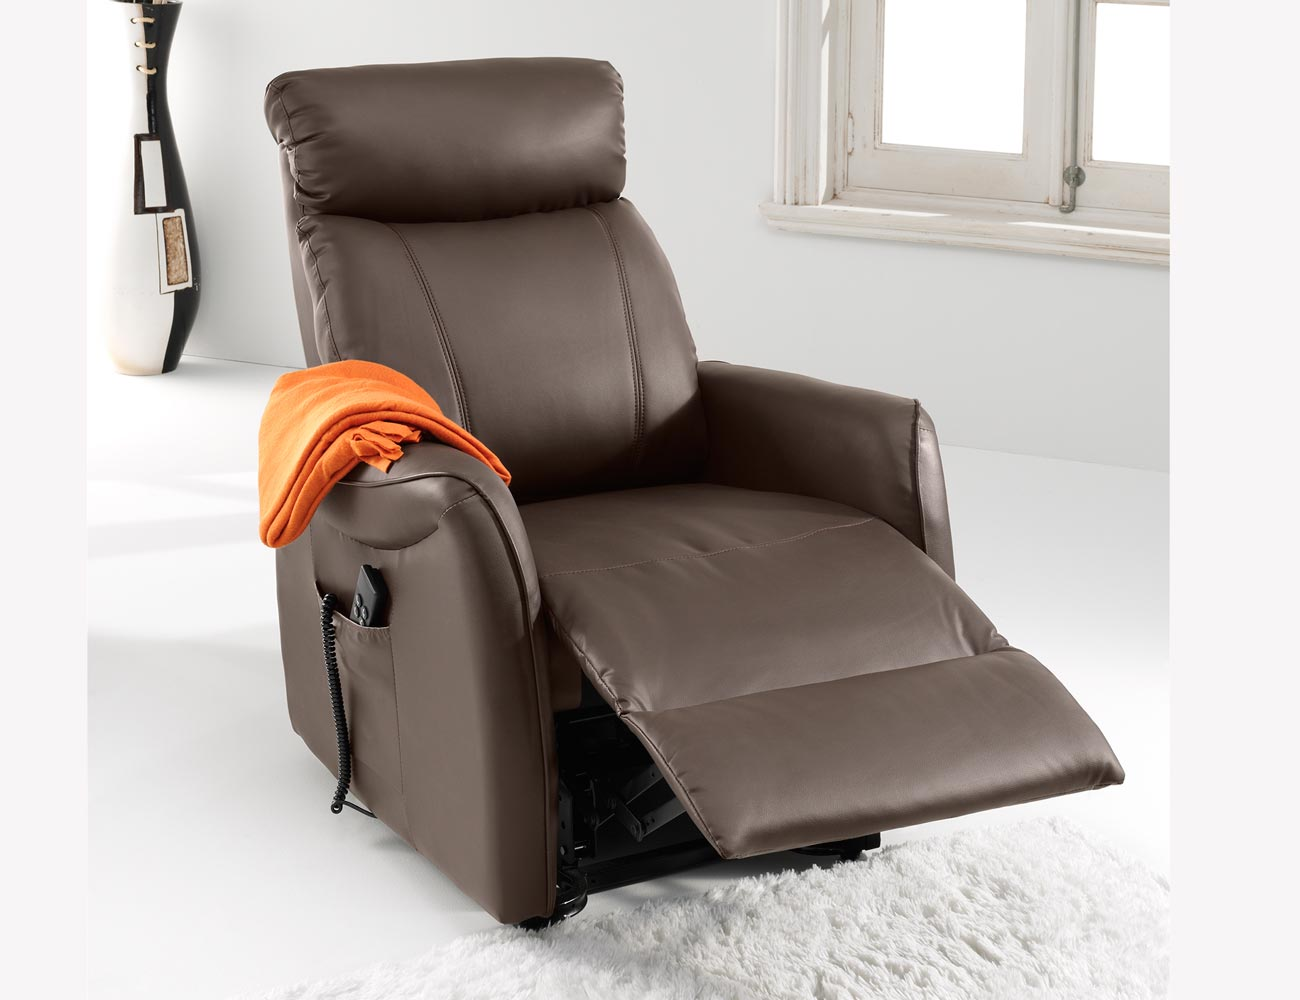 Sillon relax dos motores power lift levanta personas simil piel1